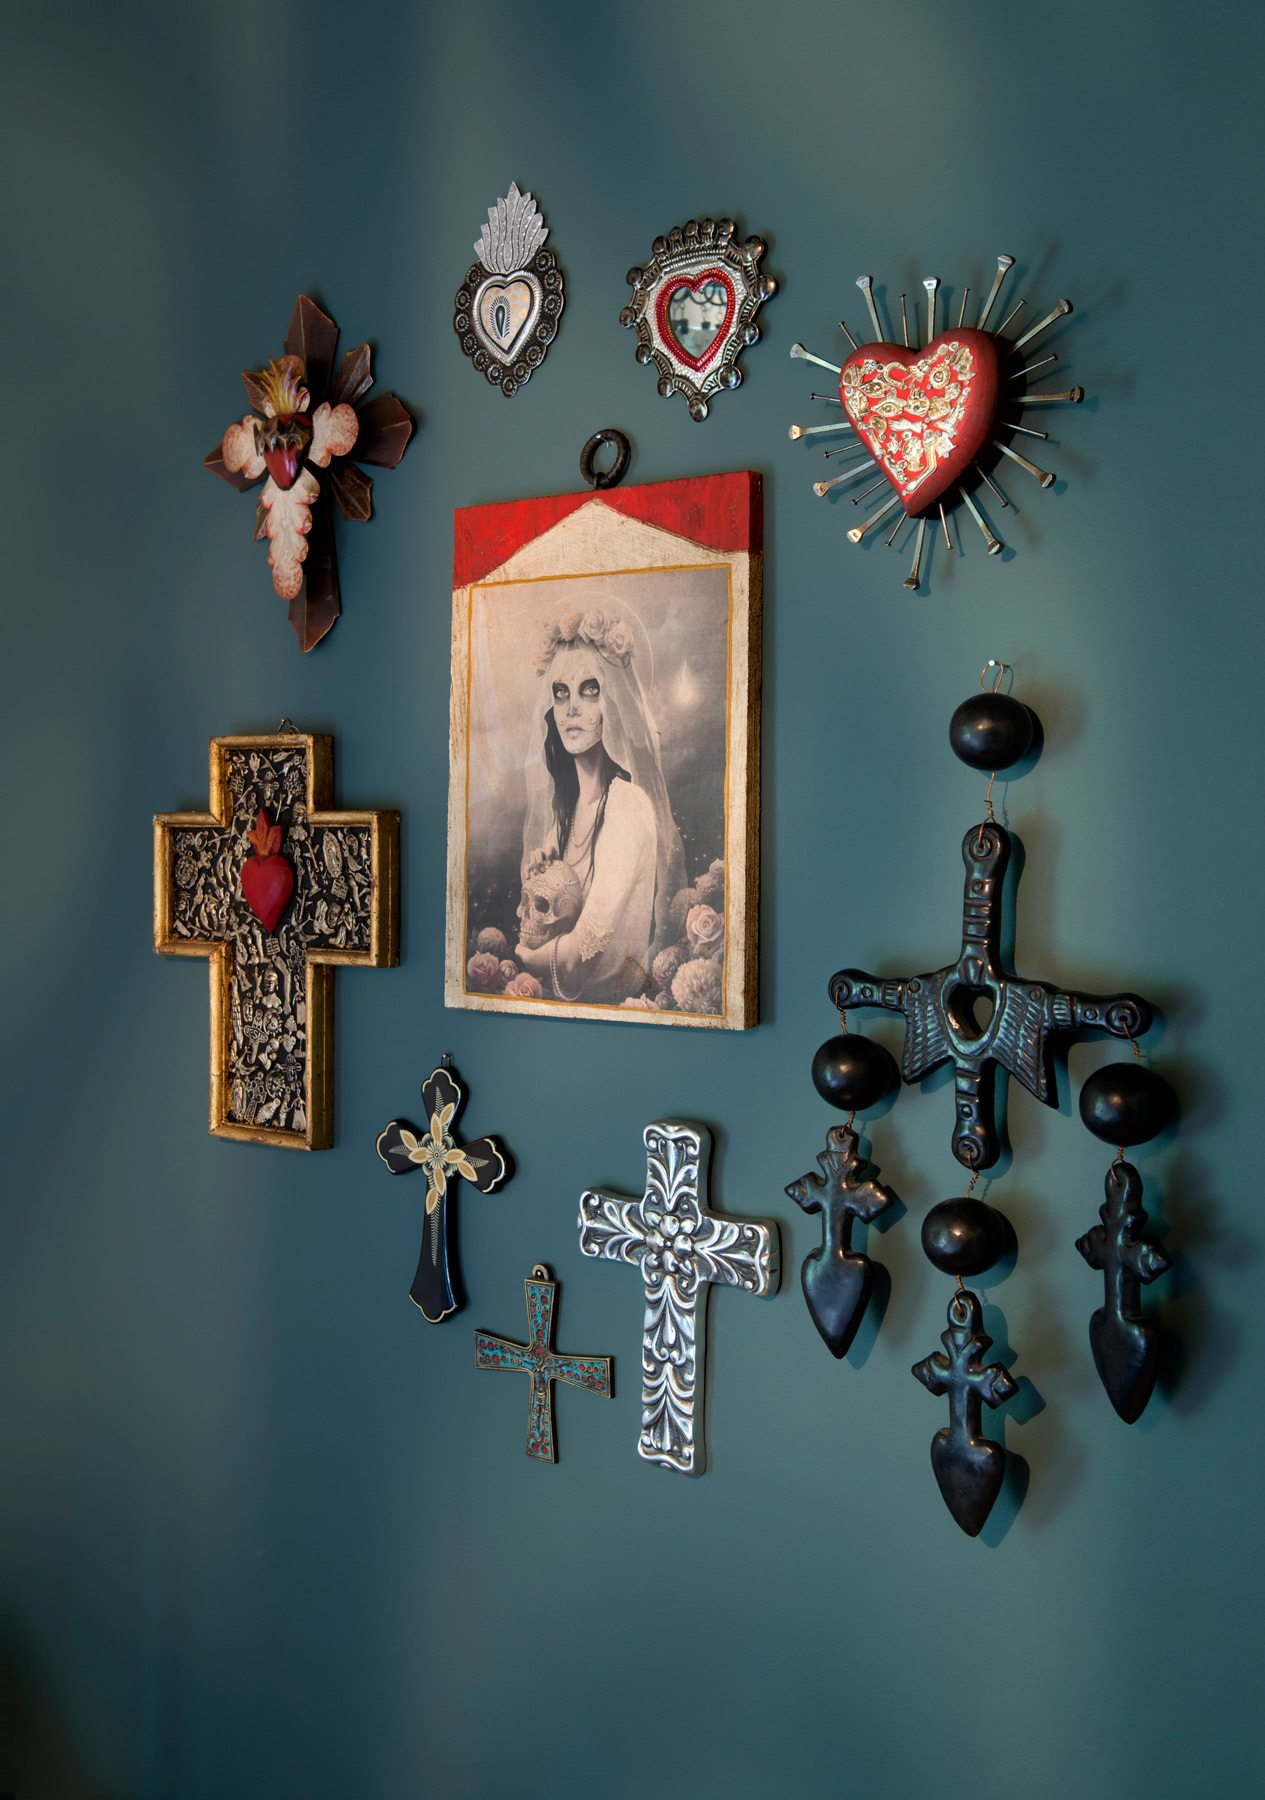 Christian symbols meet punk in the guest bedroom with its quirky display of religious artifacts, the highlight being a Day of the Dead image. Photography: Marc Fowler / Metropolis Studio